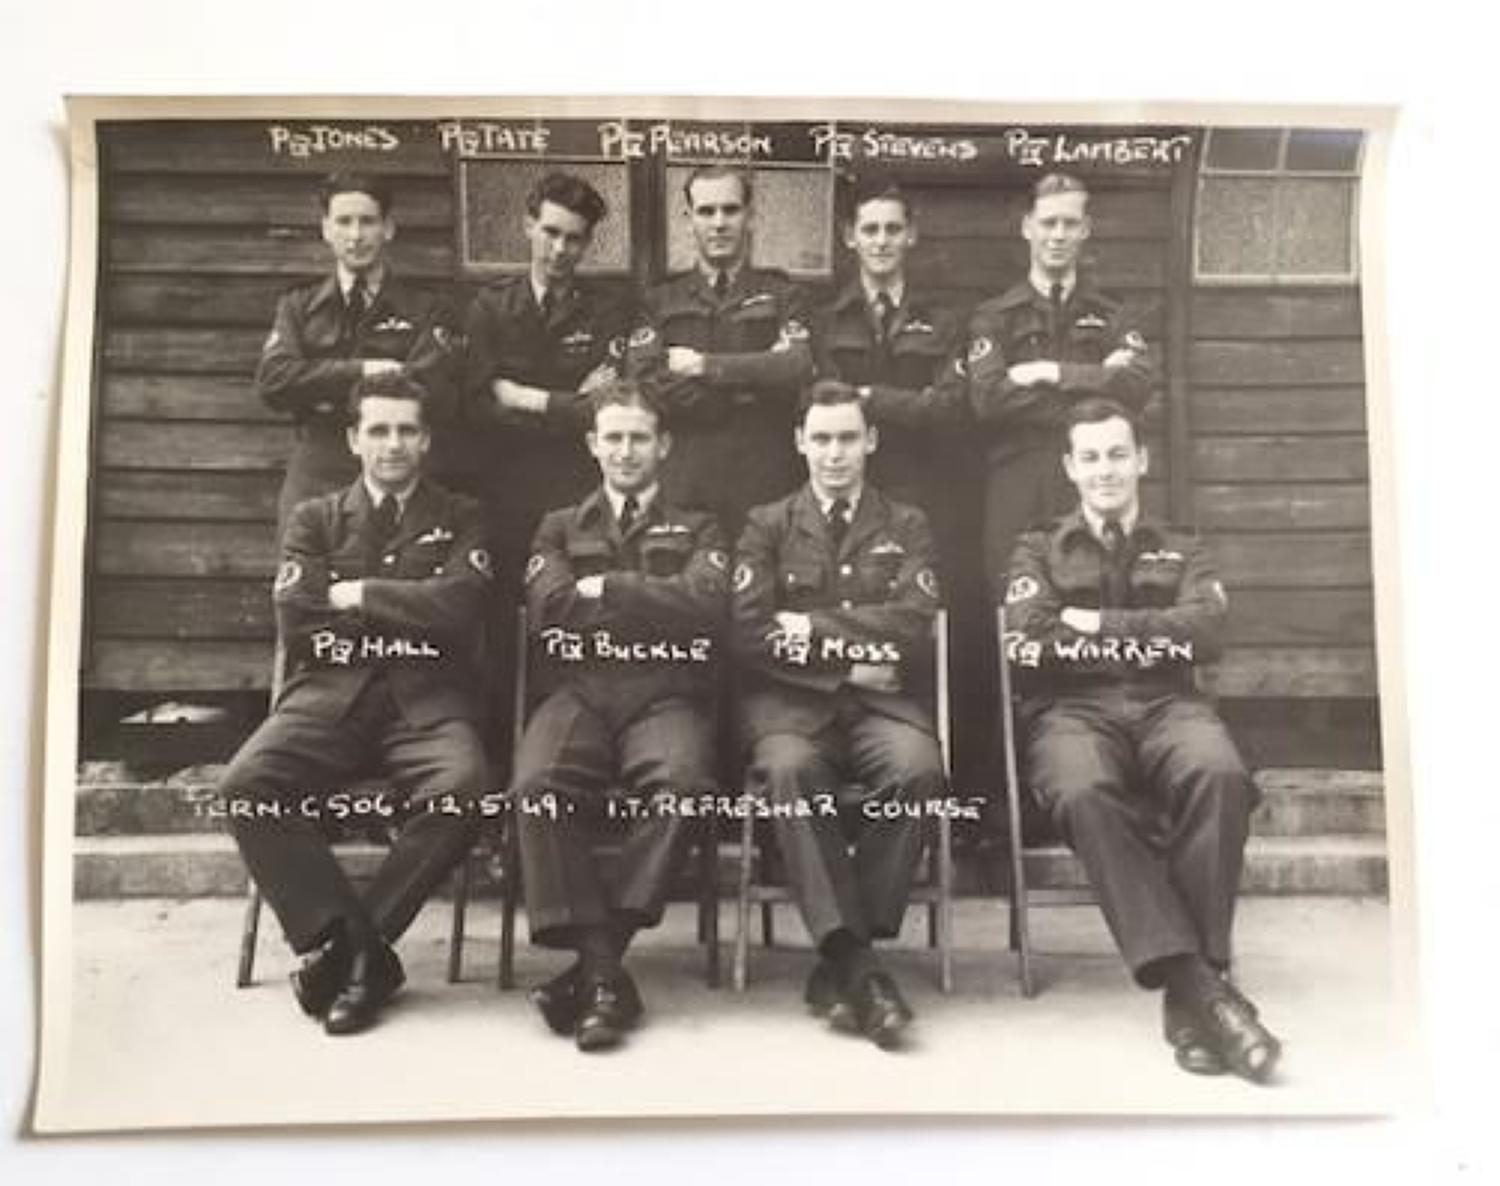 RAF Rare Aircrew 1947-1953 Group Photograph.